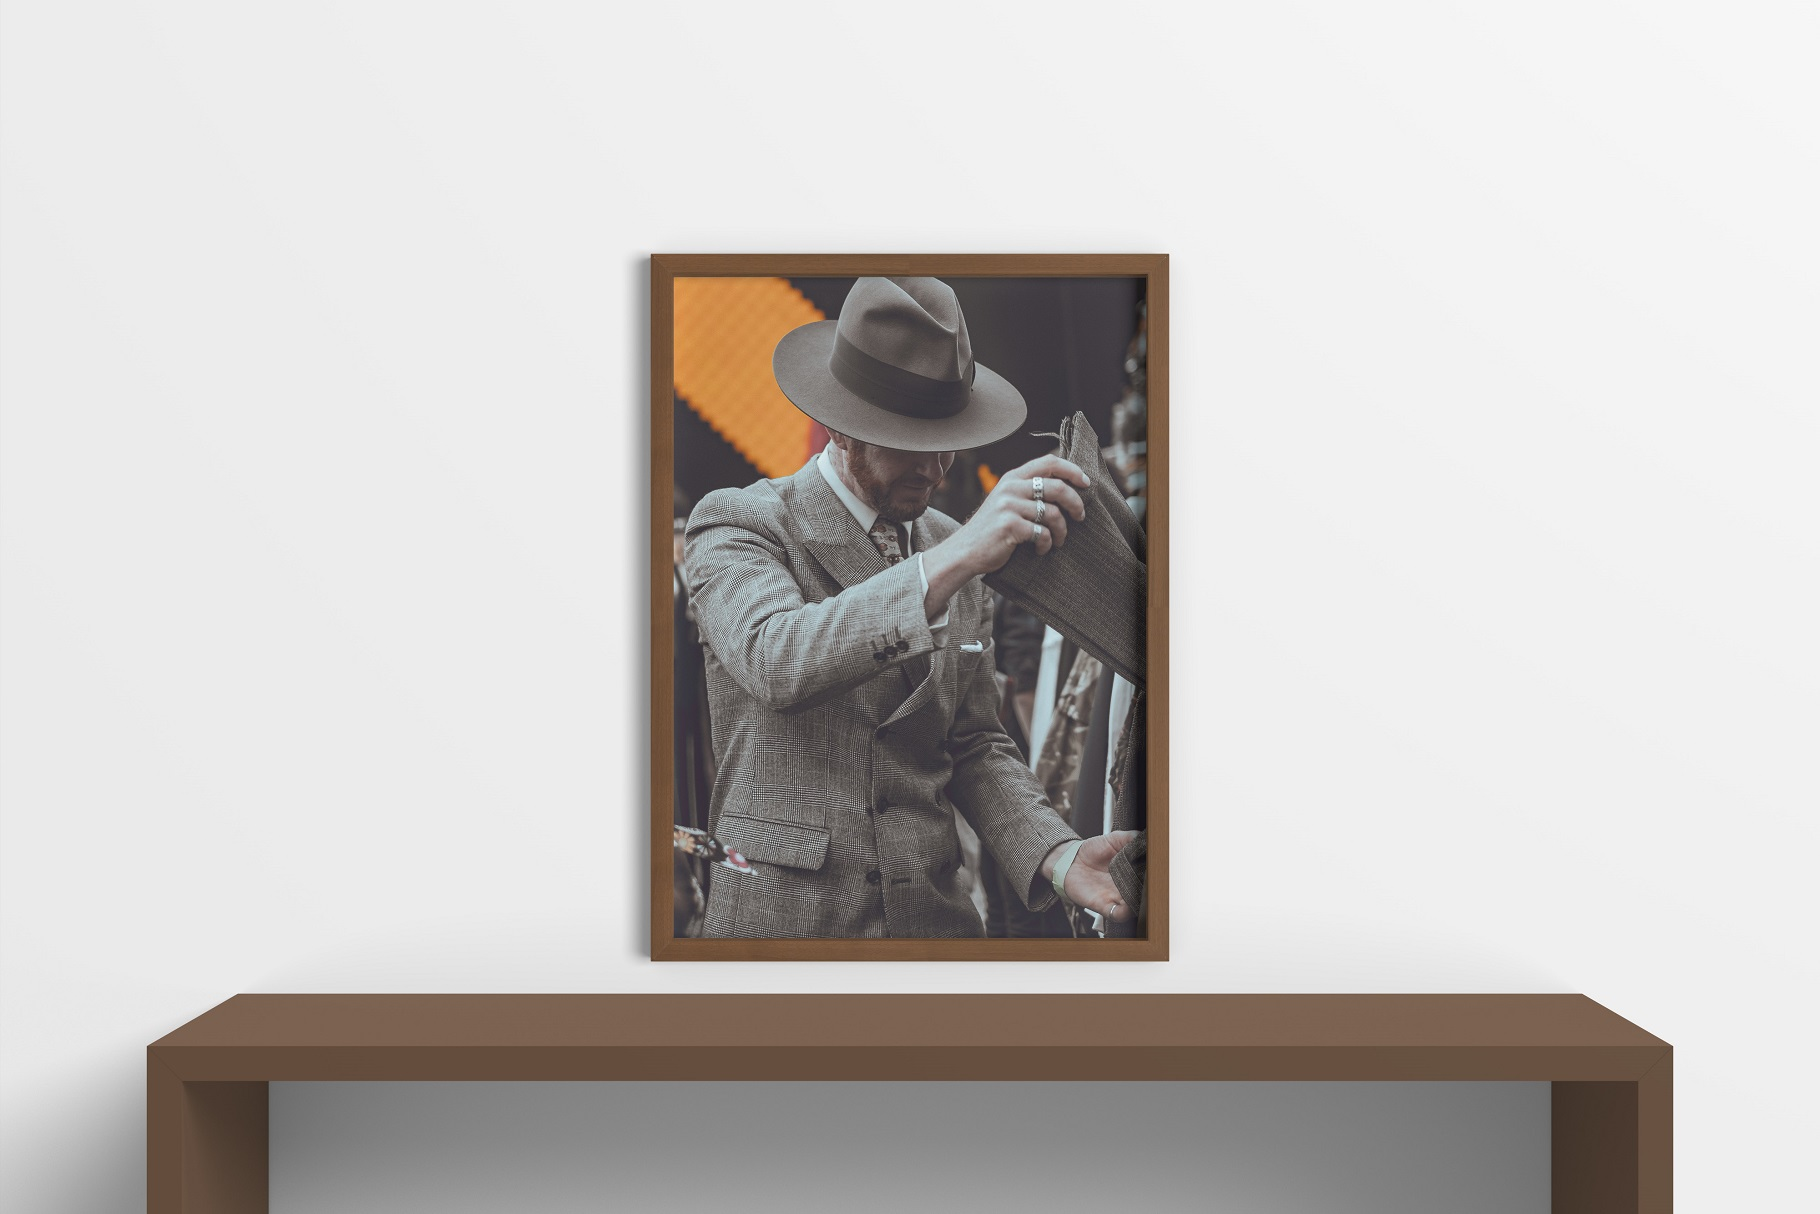 5x7 Inches Photo Frames Mockups example image 5